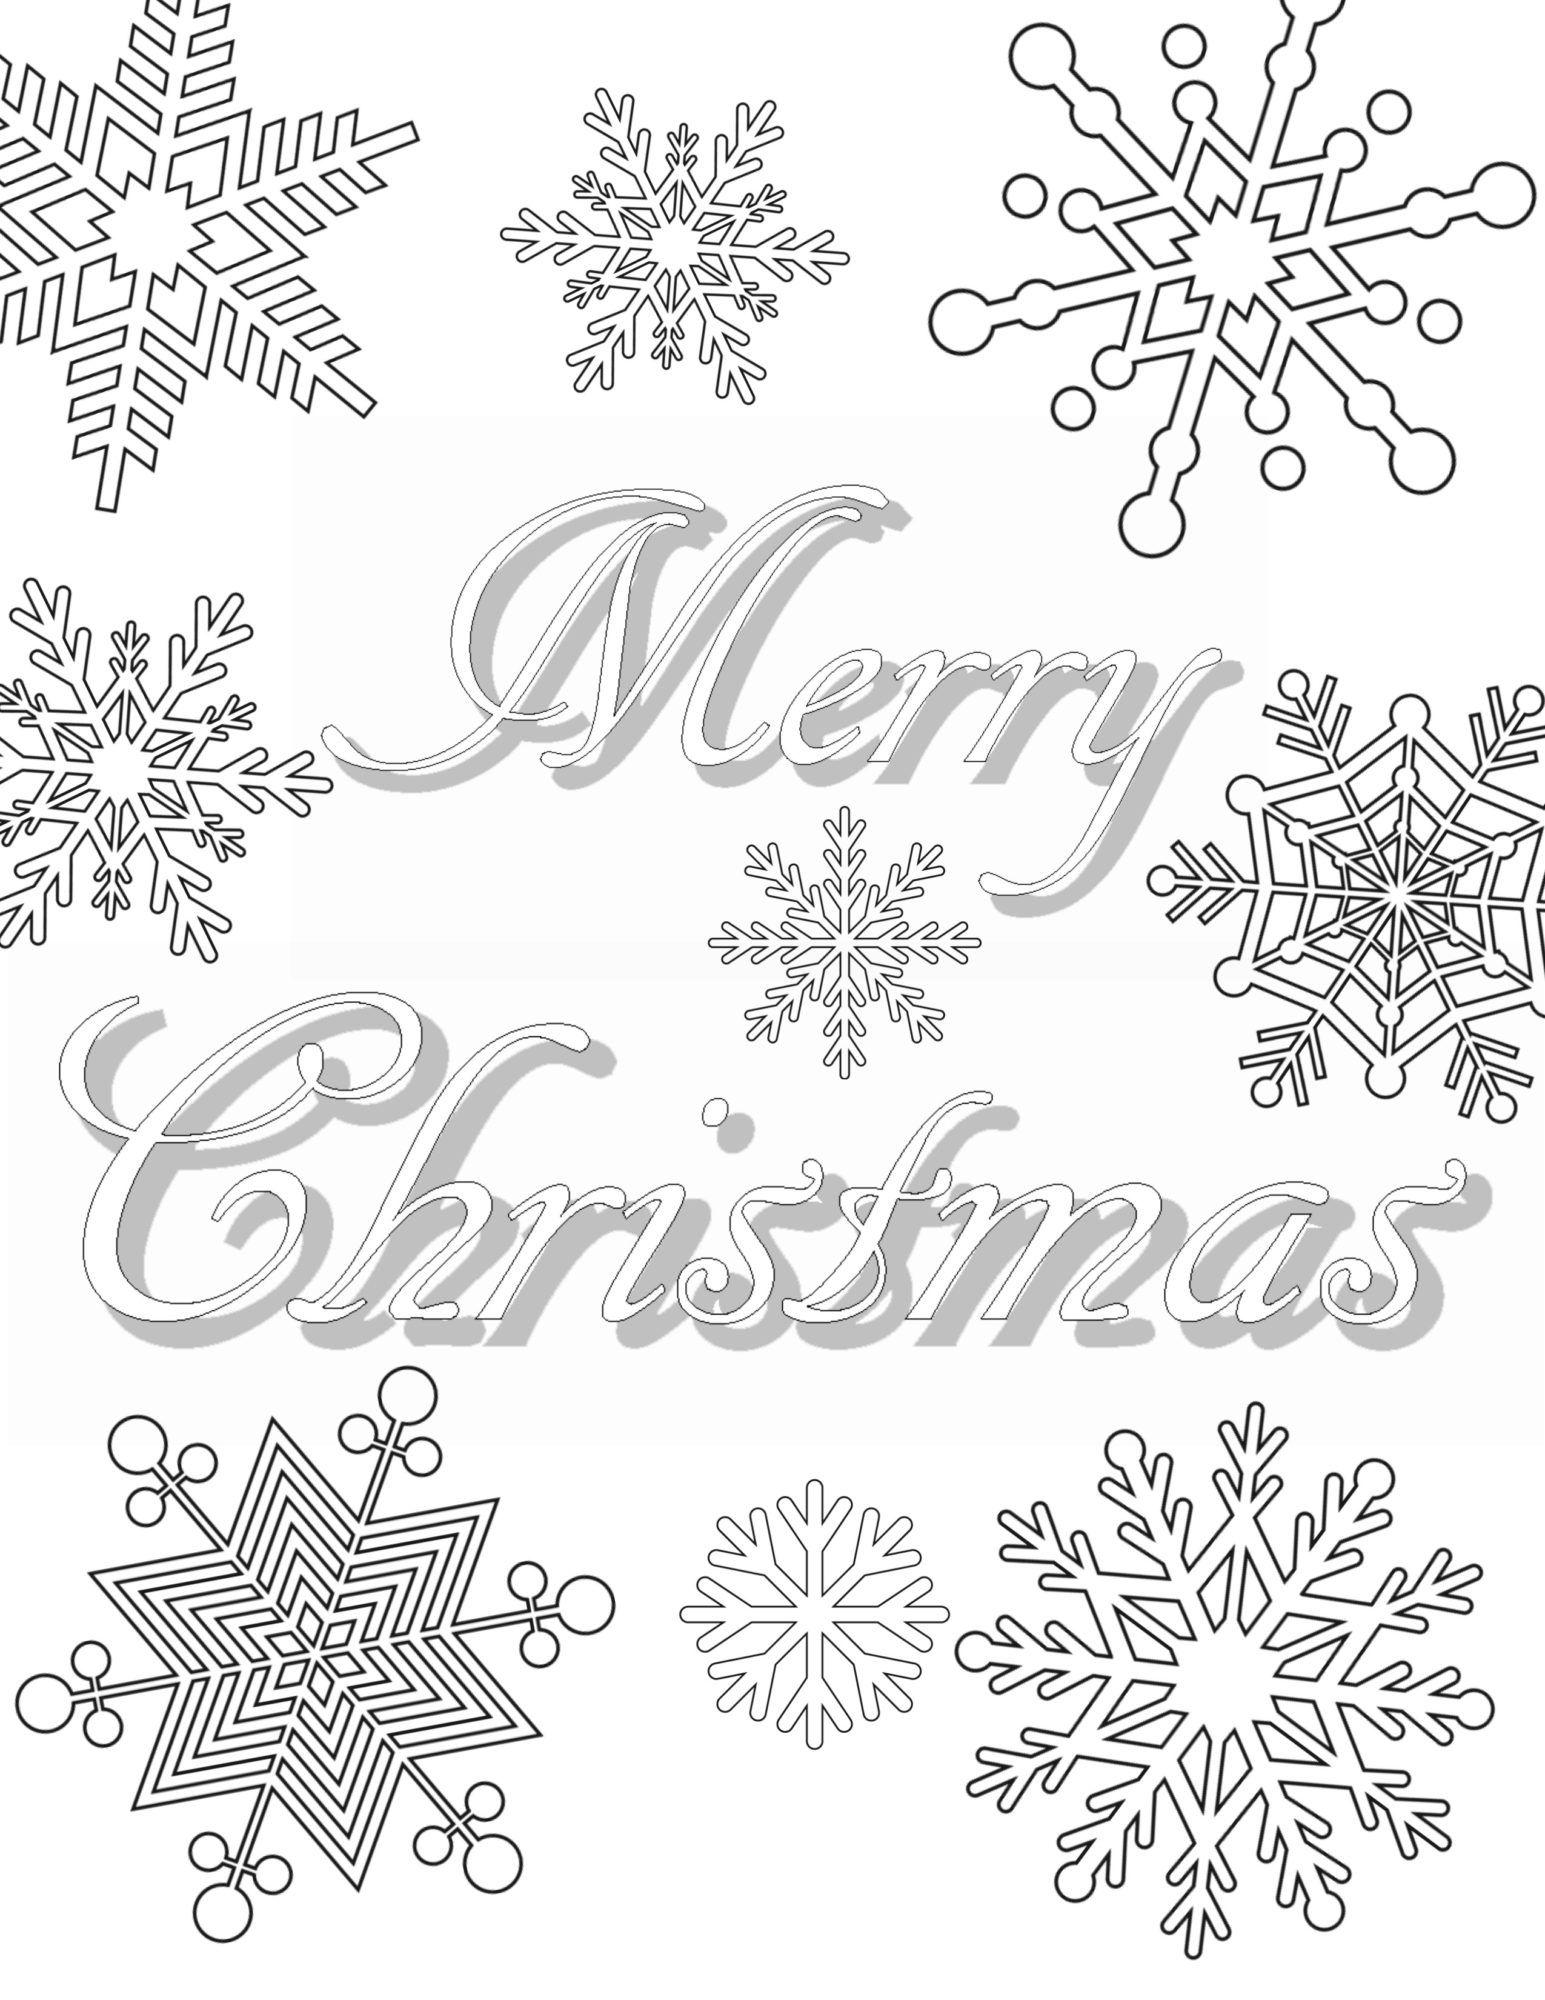 Free Printable Christmas Coloring Pages For Adults Organize Declu Printable Christmas Coloring Pages Free Christmas Coloring Pages Christmas Coloring Books